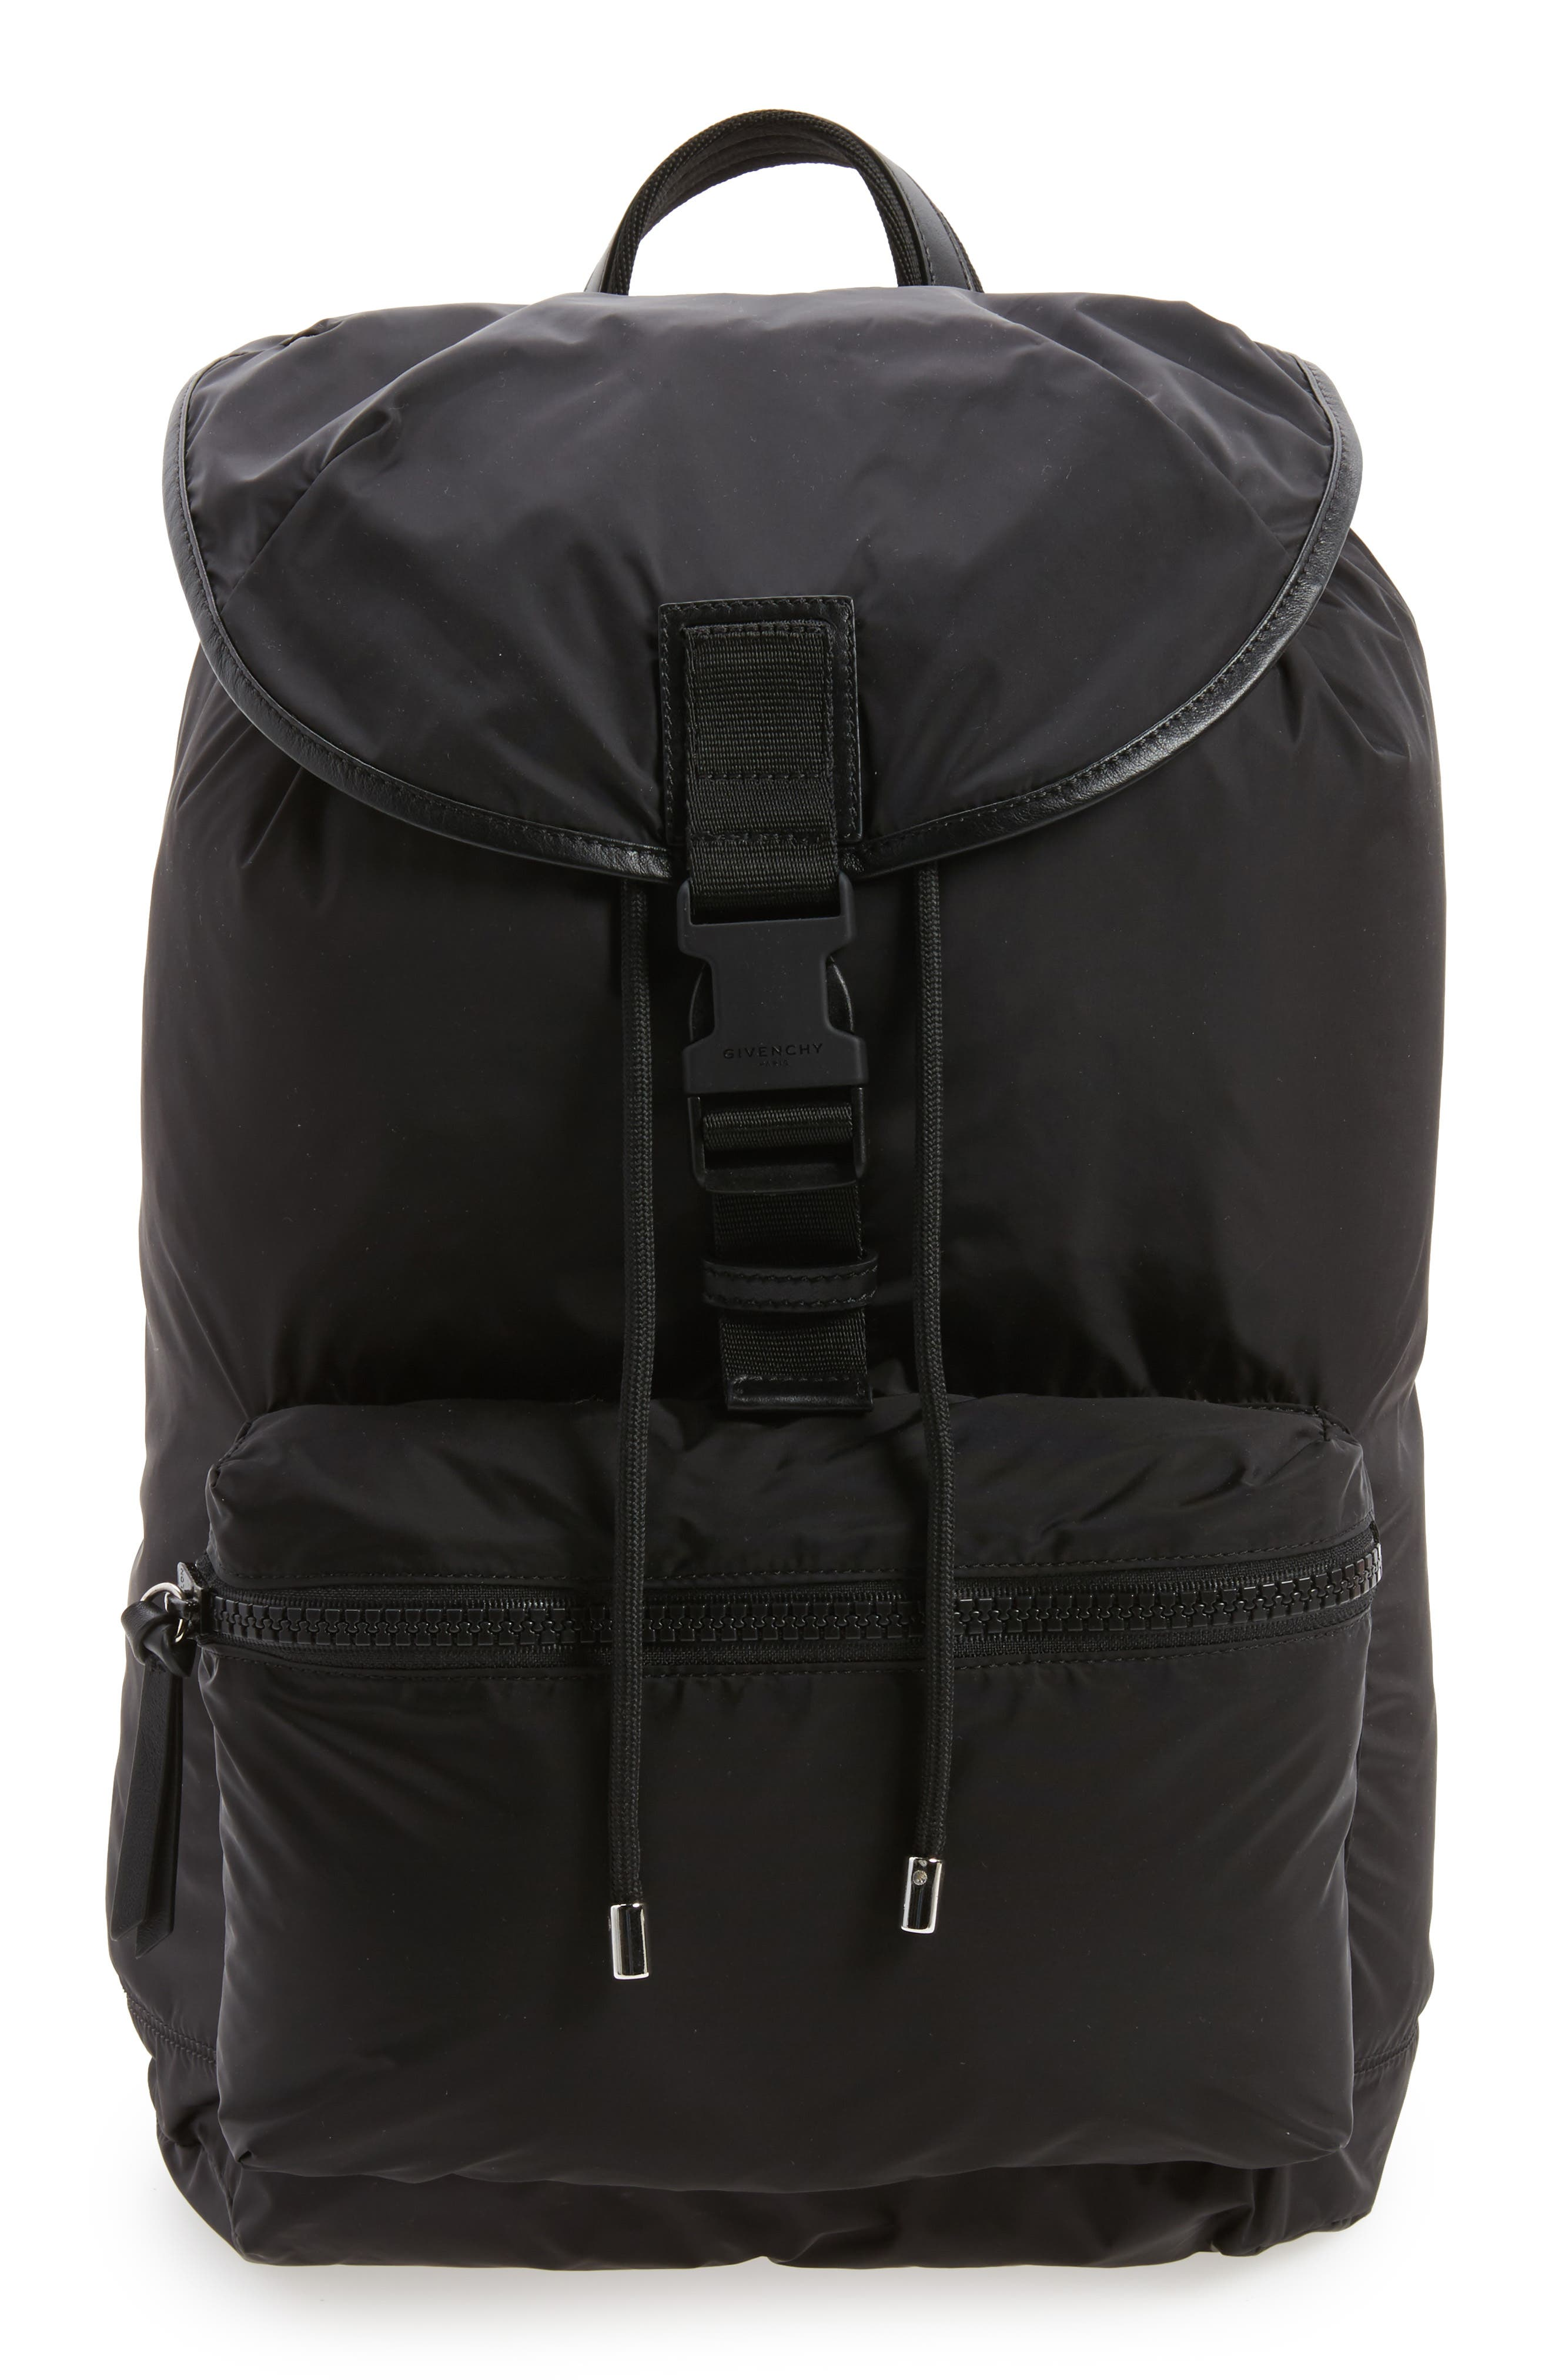 Givenchy OBS Light Backpack